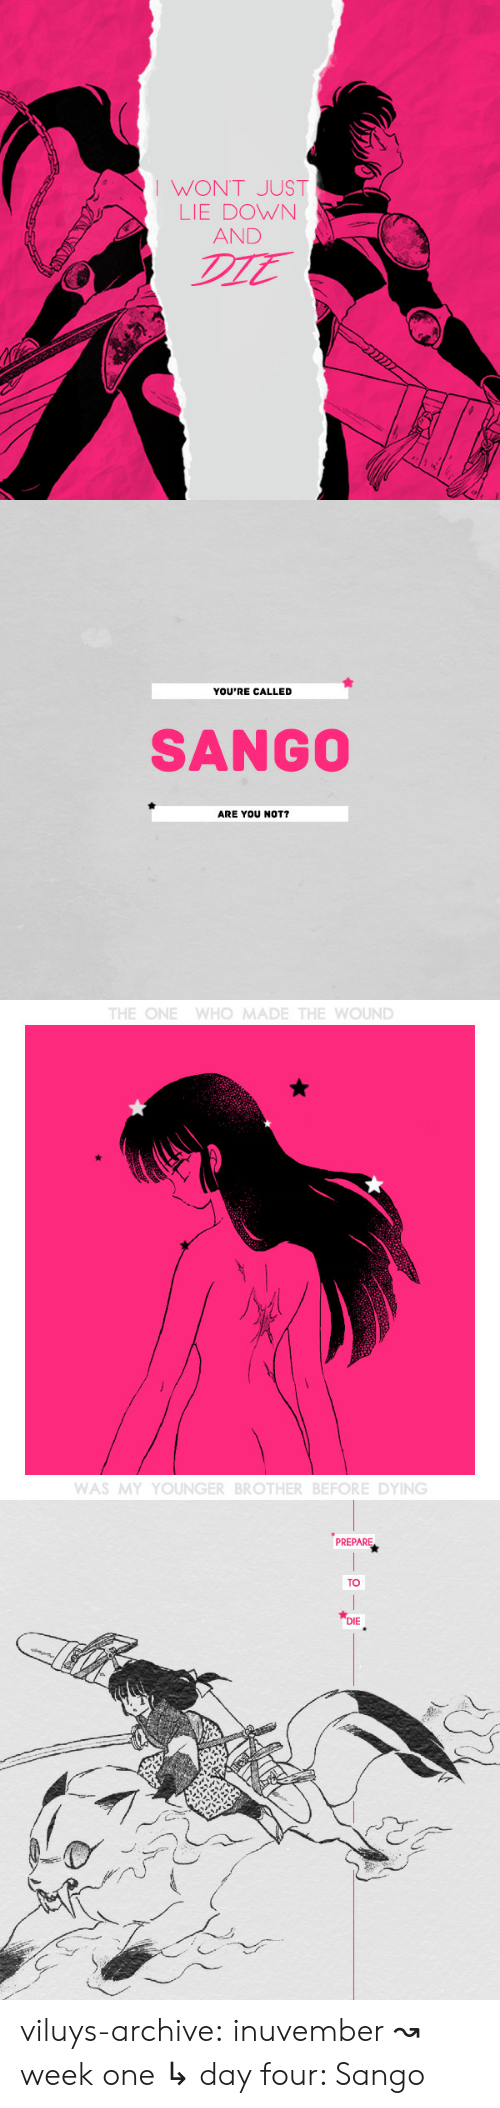 Target, Tumblr, and Blog: WON'T JUST  LIE DOWN  AND  DIE   YOU'RE CALLED  SANGO  ARE YOU NOT?   THE ONE WHO MADE THE WOUND  WAS MY YOUNGER BROTHER BEFOREDYING   PREPARE  TO  DIE viluys-archive:  inuvember ↝ week one ↳ day   four: Sango